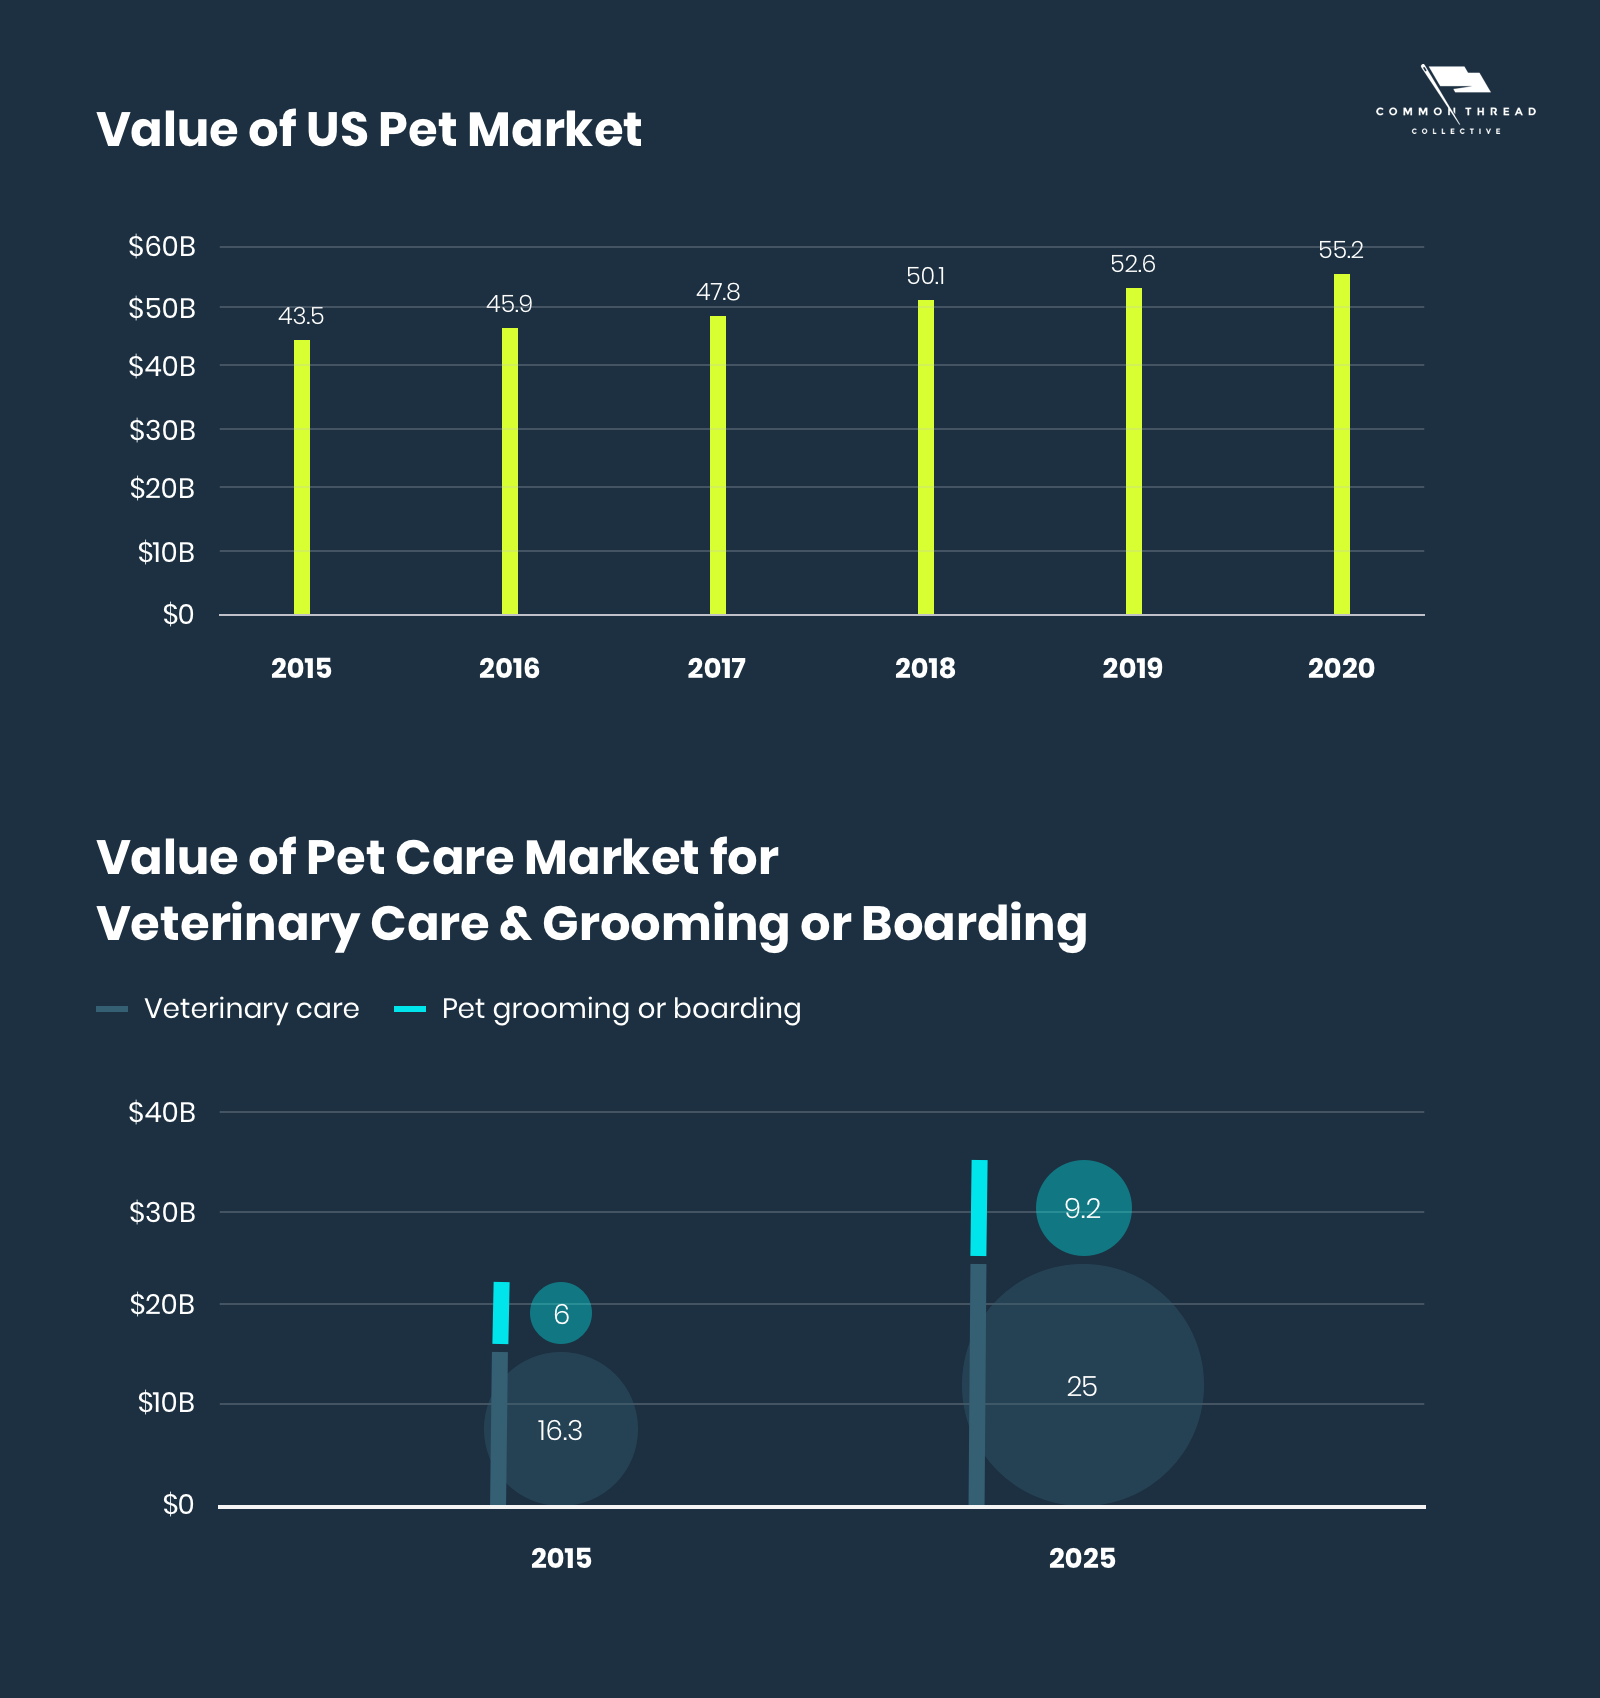 Value of US Pet Market